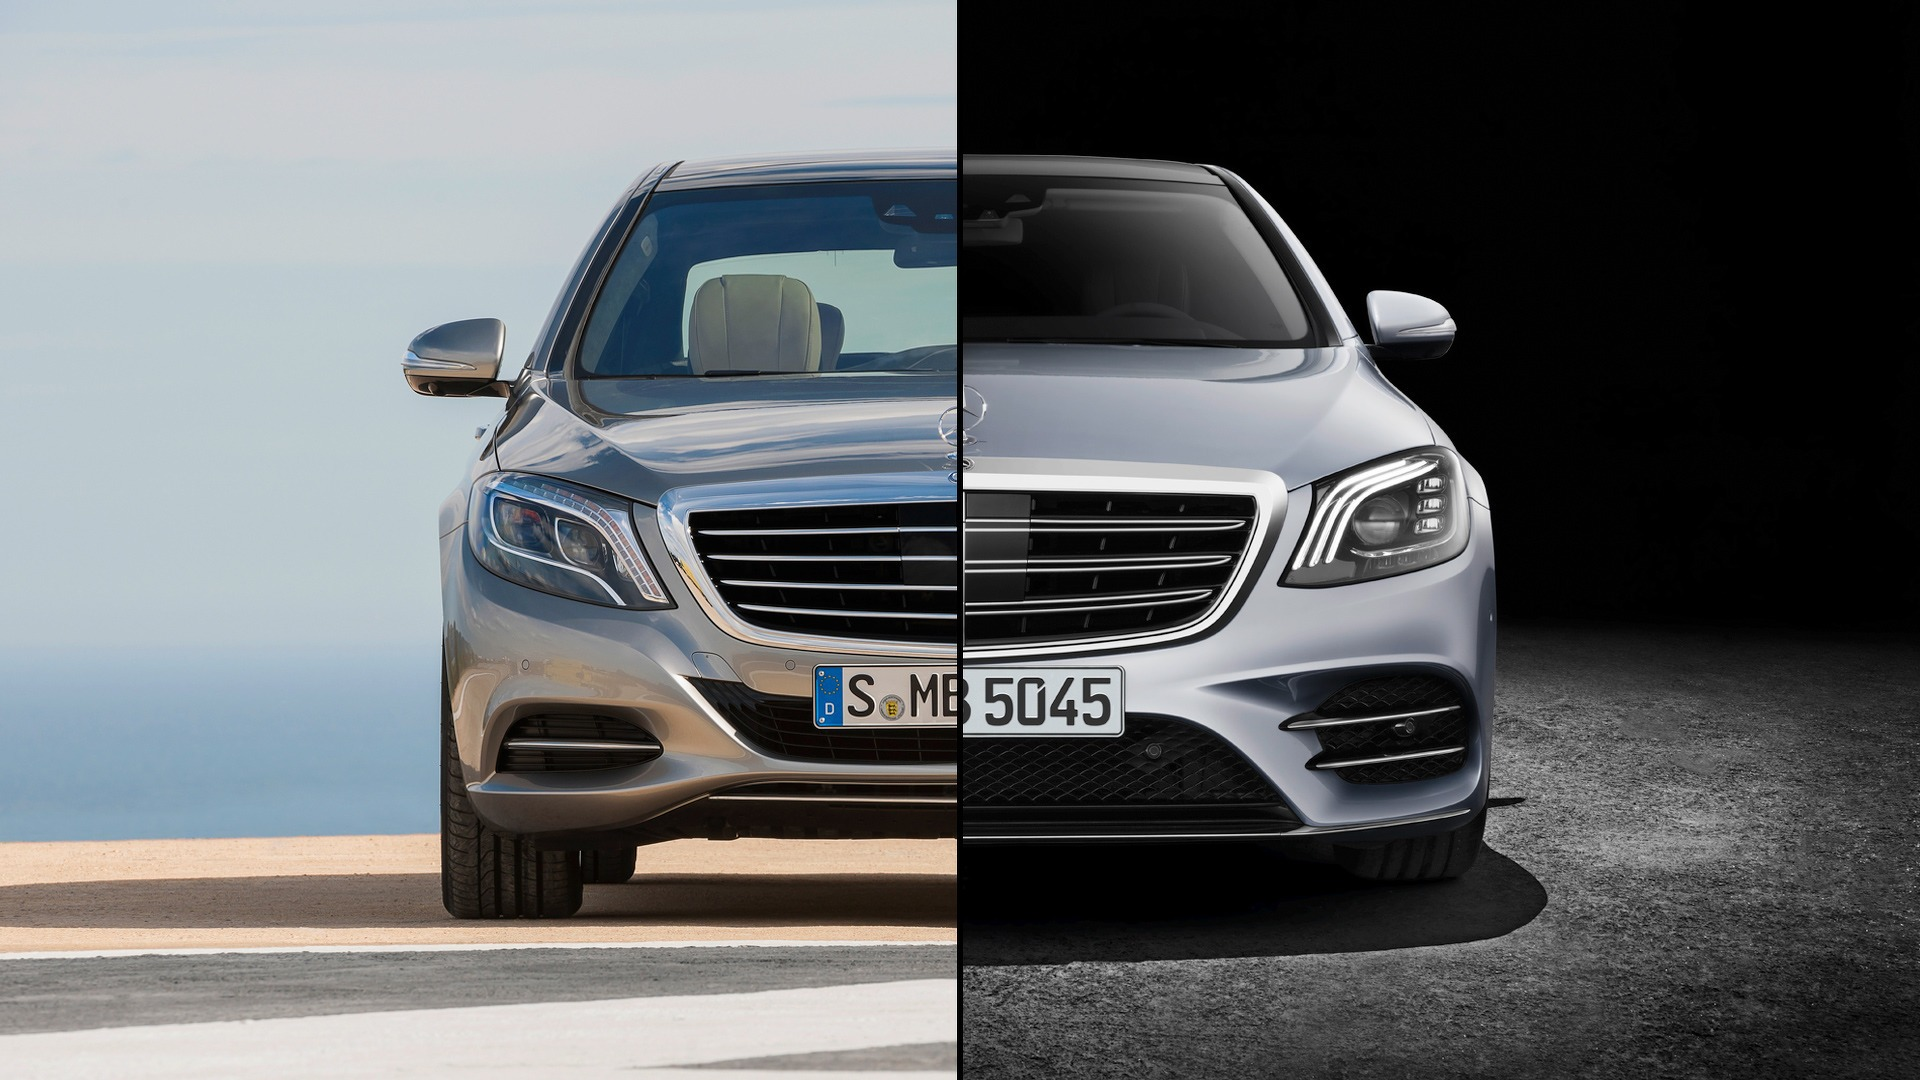 Launching in February: Mercedes-Benz S-Class Facelift